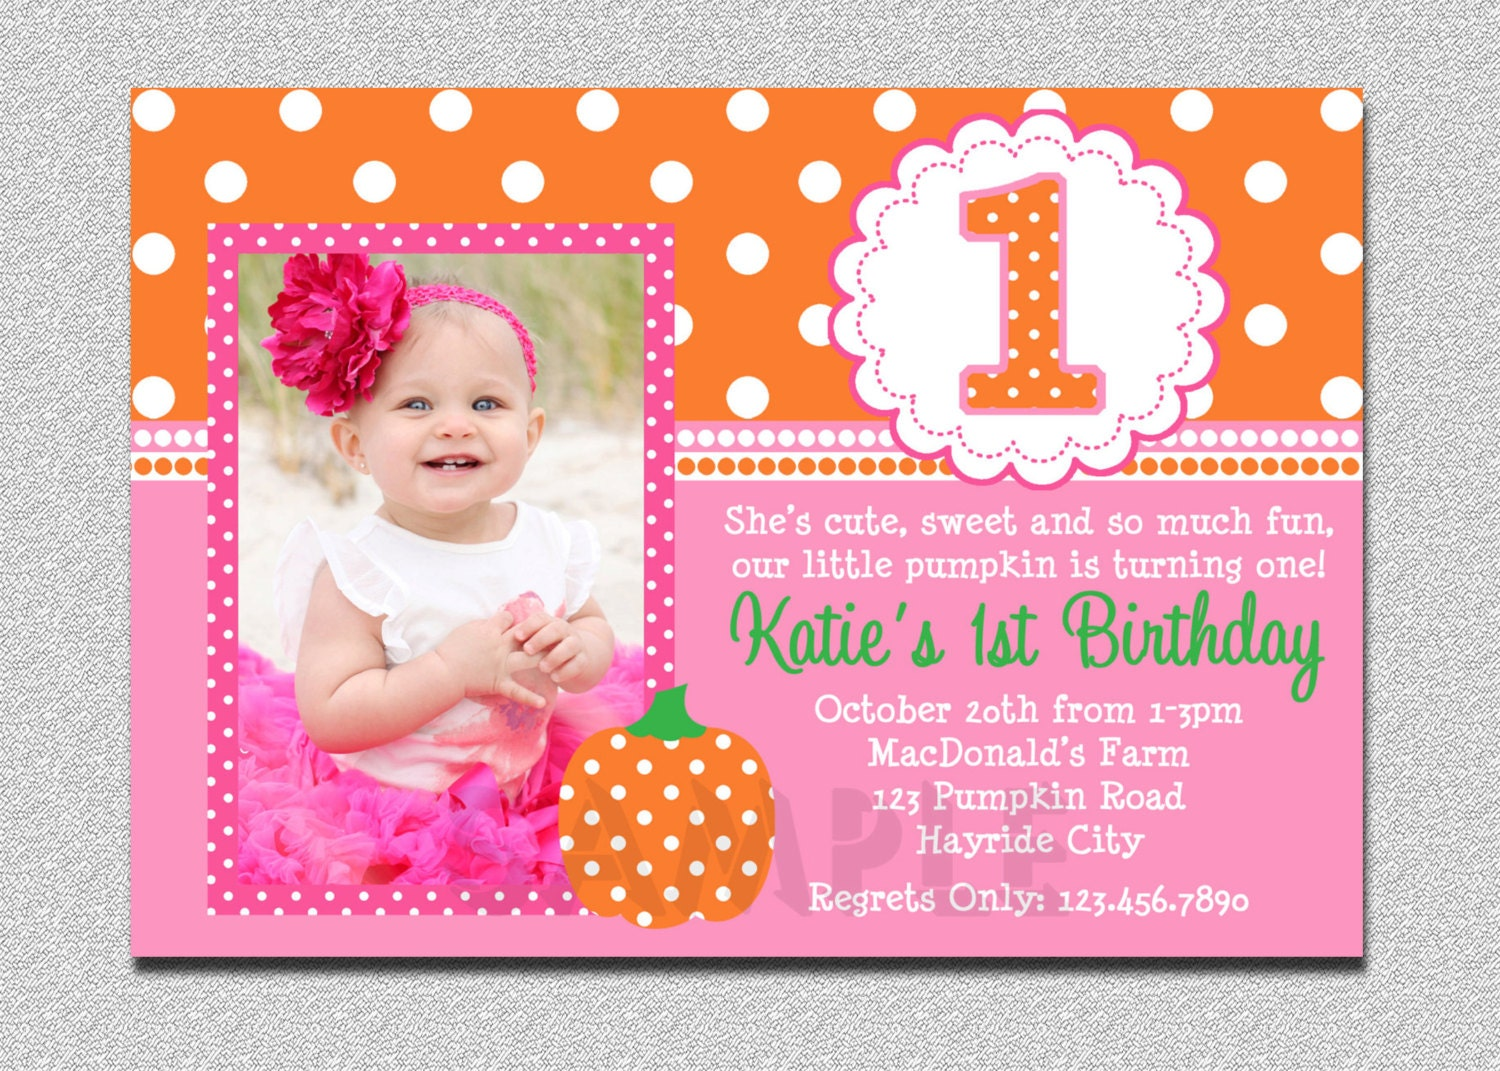 Pumpkin Birthday Invitation Pumpkin 1st Birthday Party – Invitation for First Birthday Party